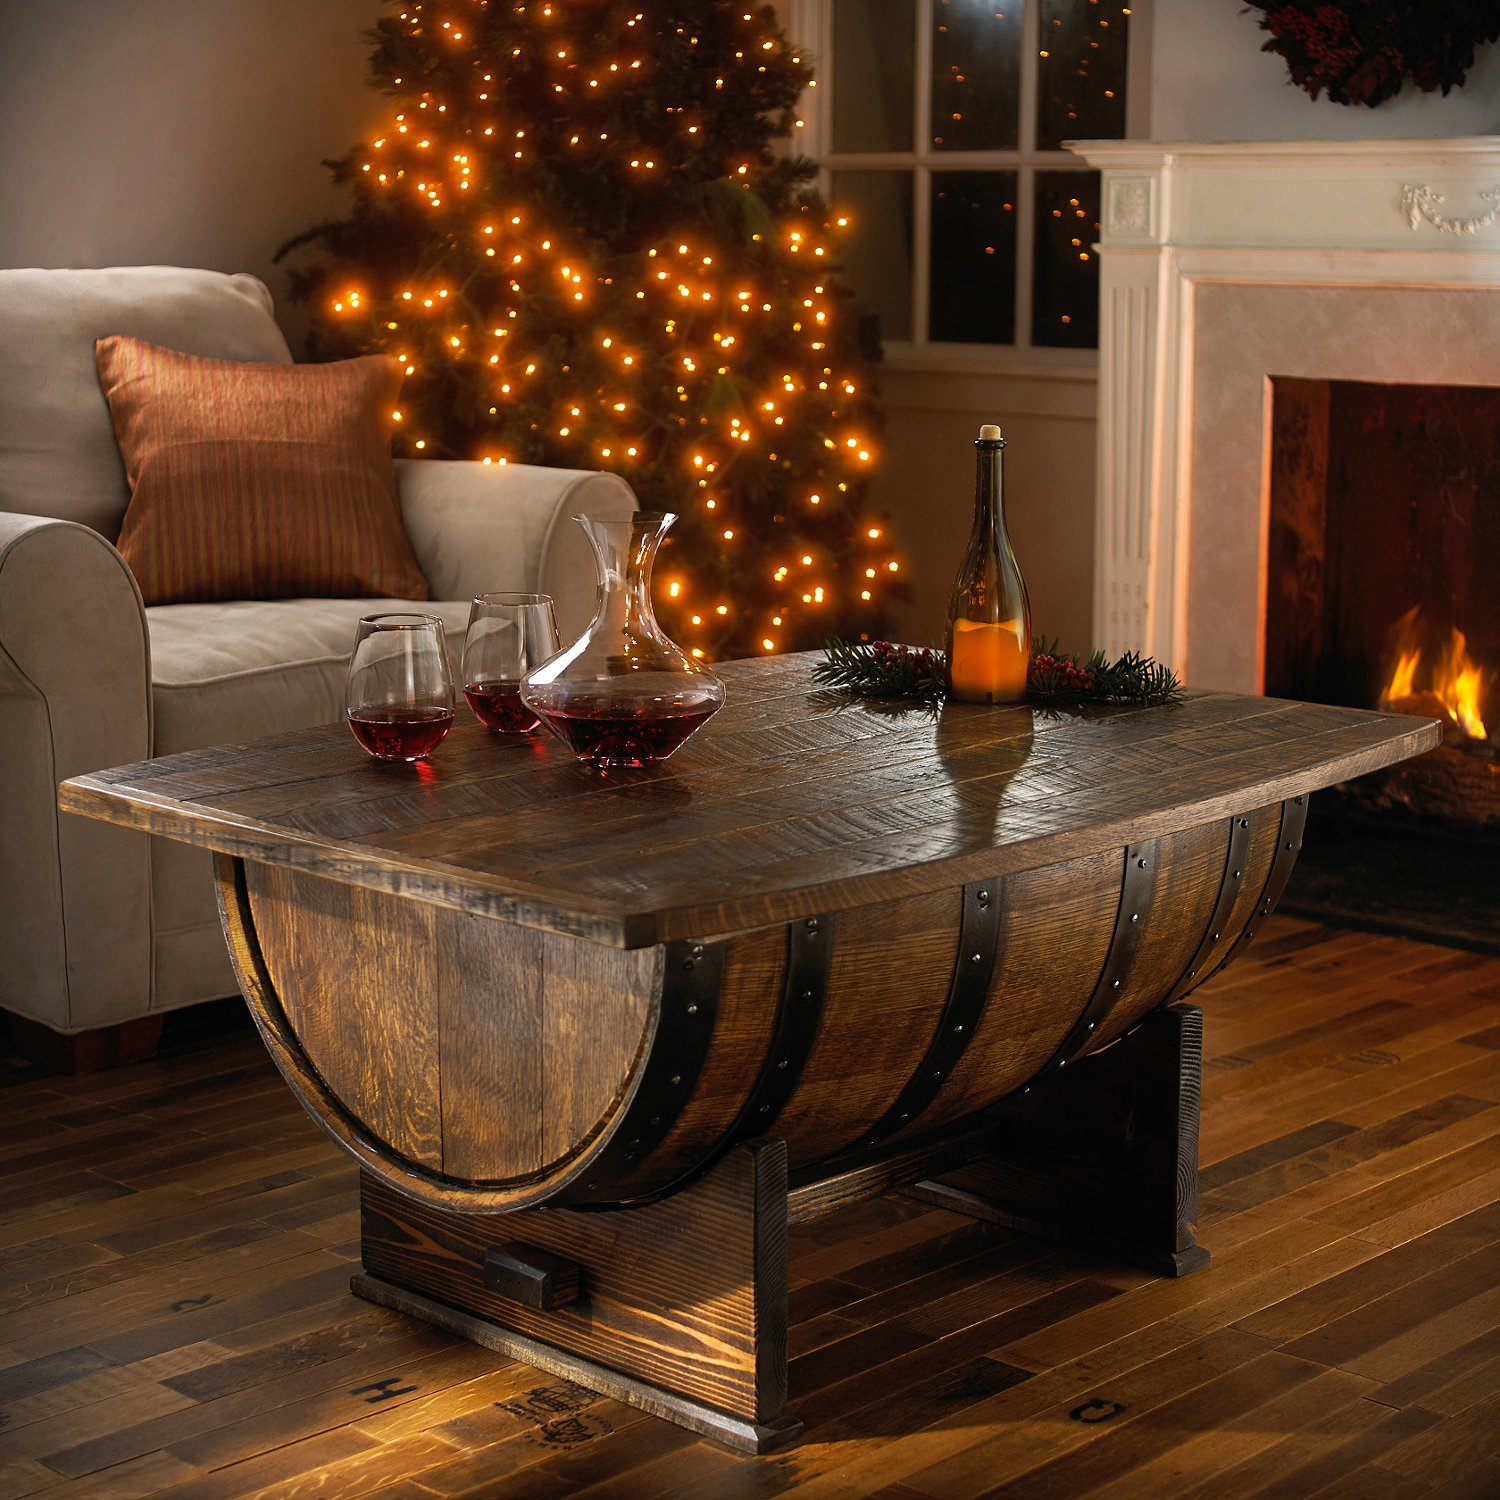 whiskey barrel coffee table plans pixelbox home design diy end accent high lighting dining chairs edmonton modern living room lamps hardwood floor threshold hawthorne glass top